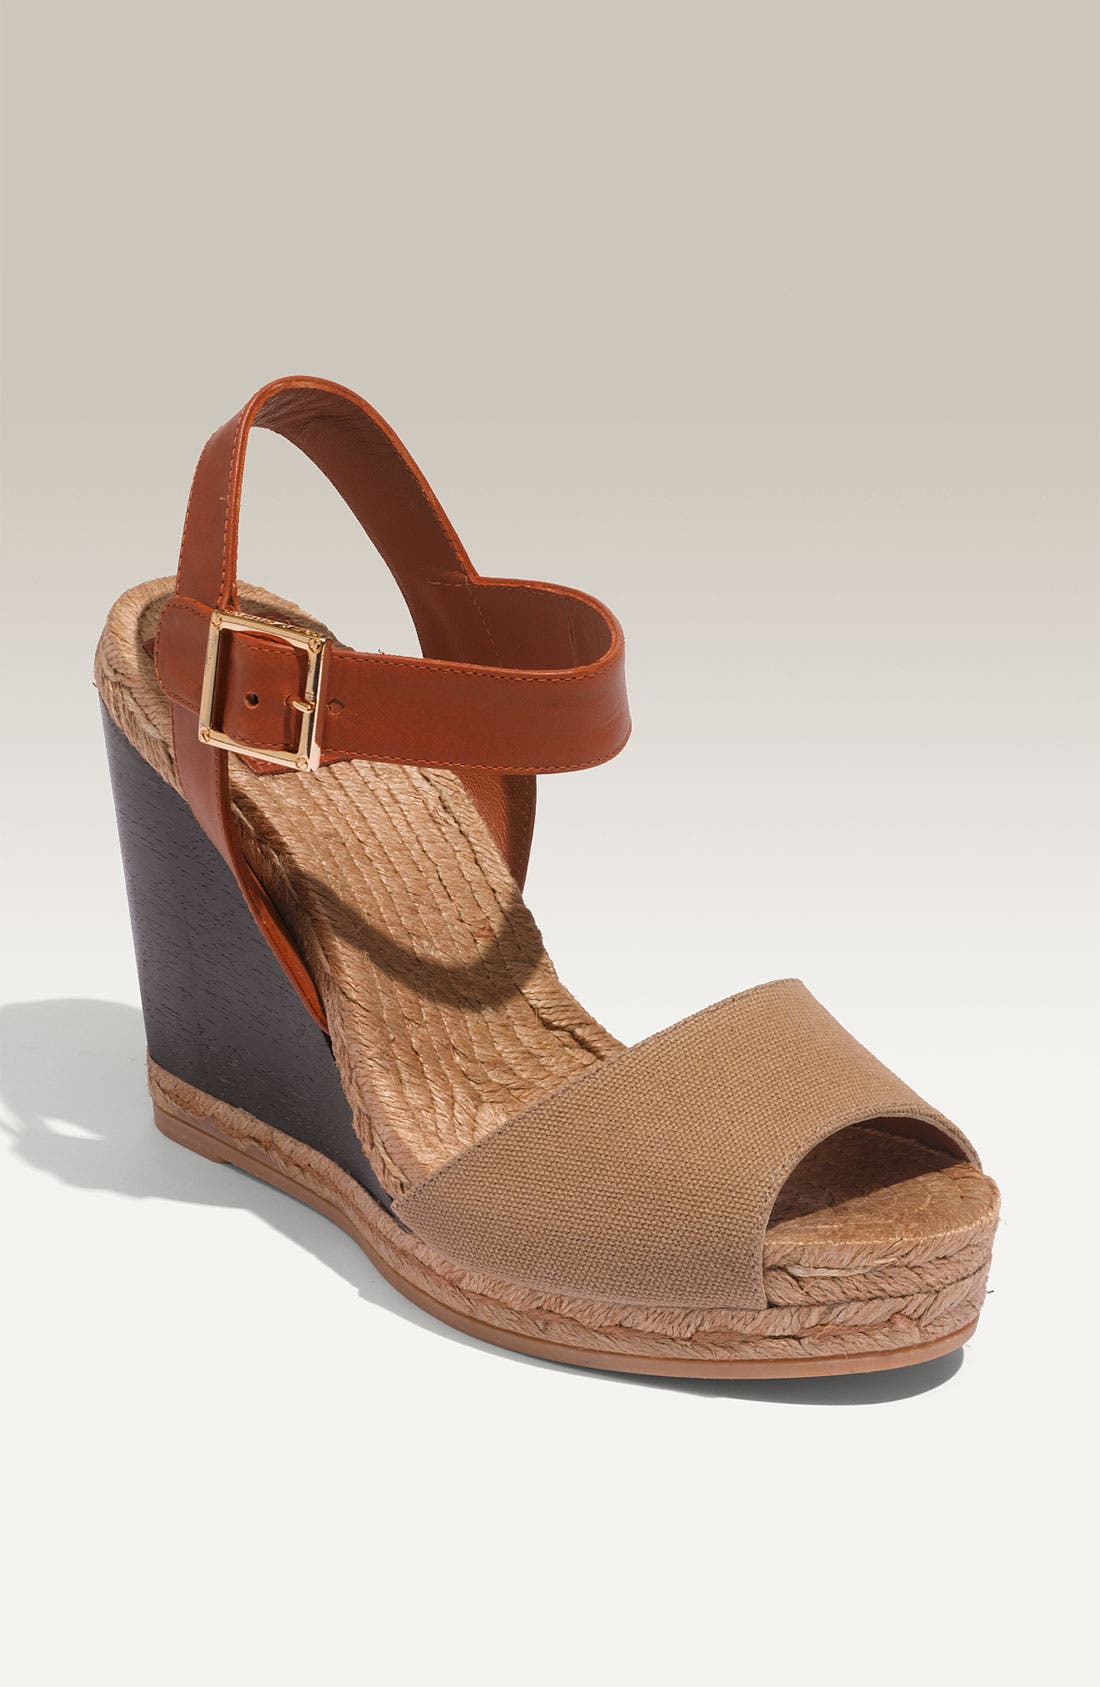 Alternate Image 1 Selected - Tory Burch Wood Wedge Espadrille